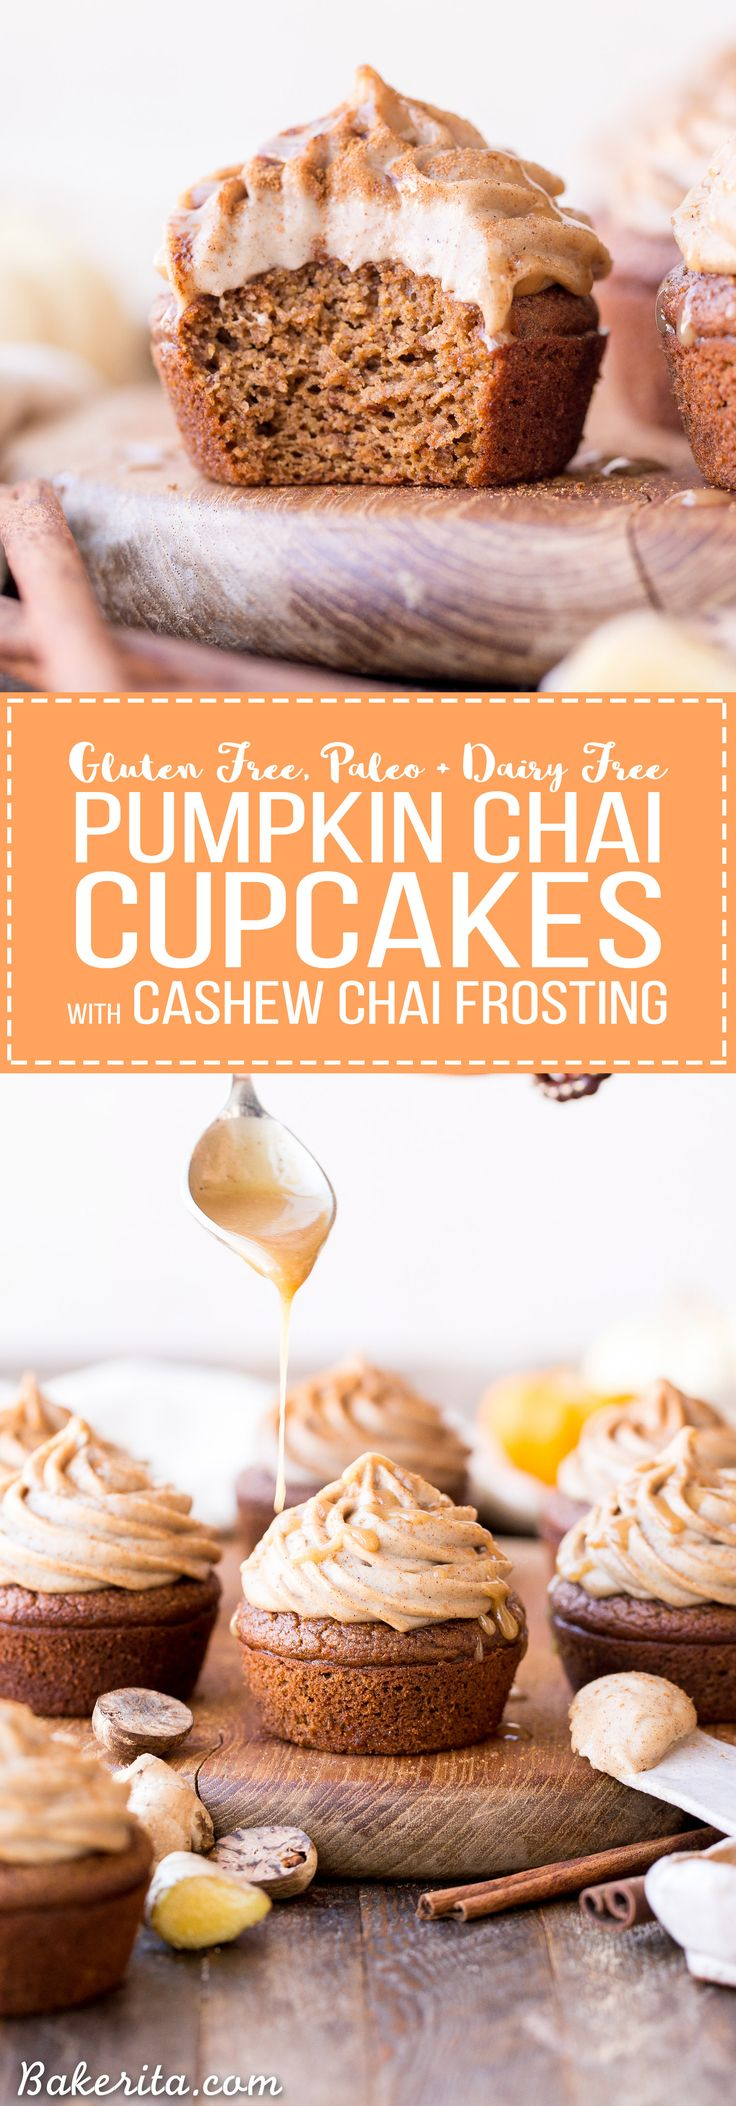 These Pumpkin Chai Cupcakes are soft, moist and bursting with warm chai spices and pumpkin flavor. They're topped with an irresistible cashew-based chai frosting that you'd never guess is paleo + vegan. @simplemills #ad